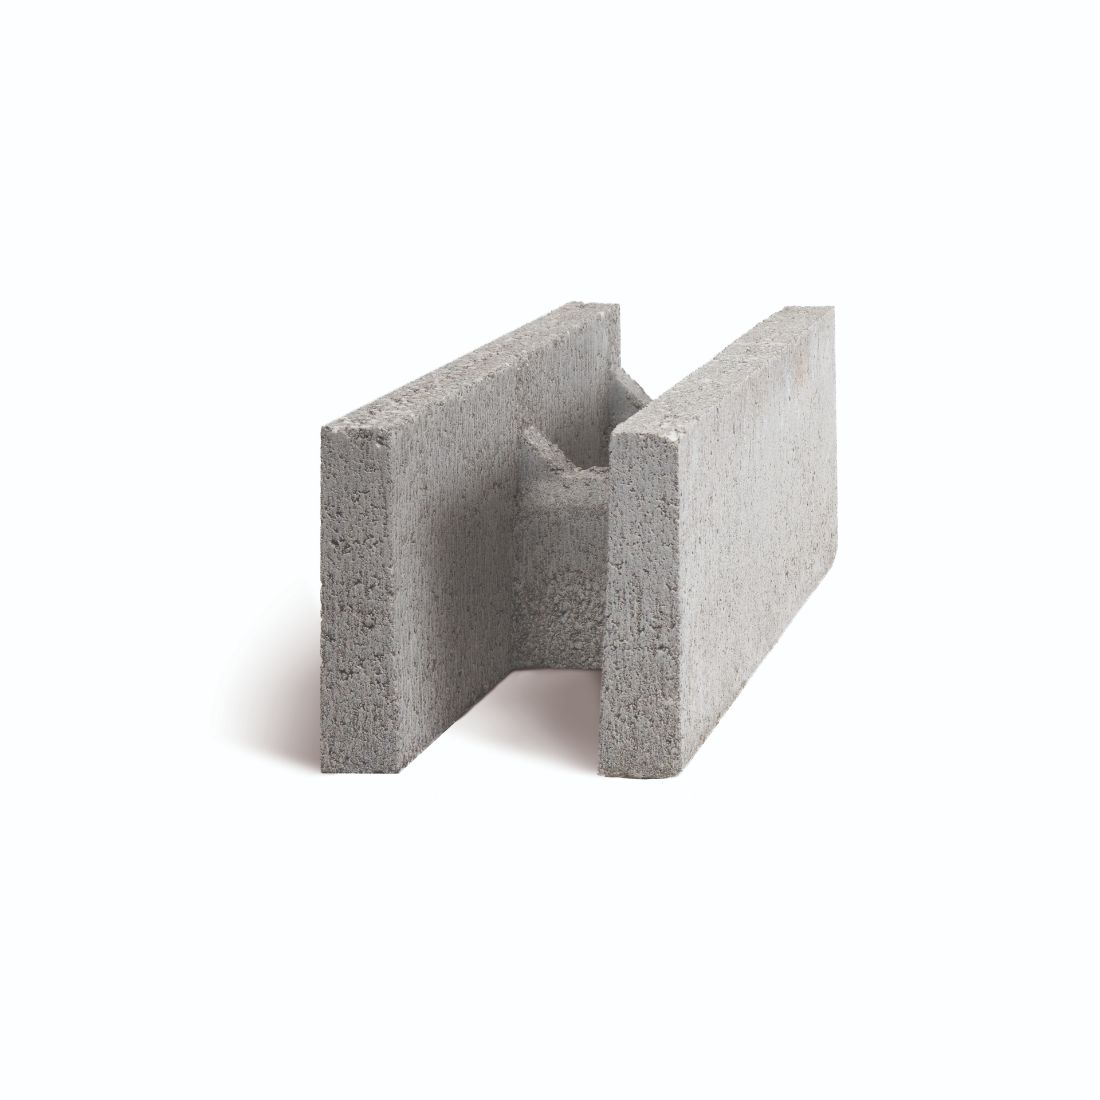 20.16 Open End Bond Beam Block 390 x 190 x 190mm